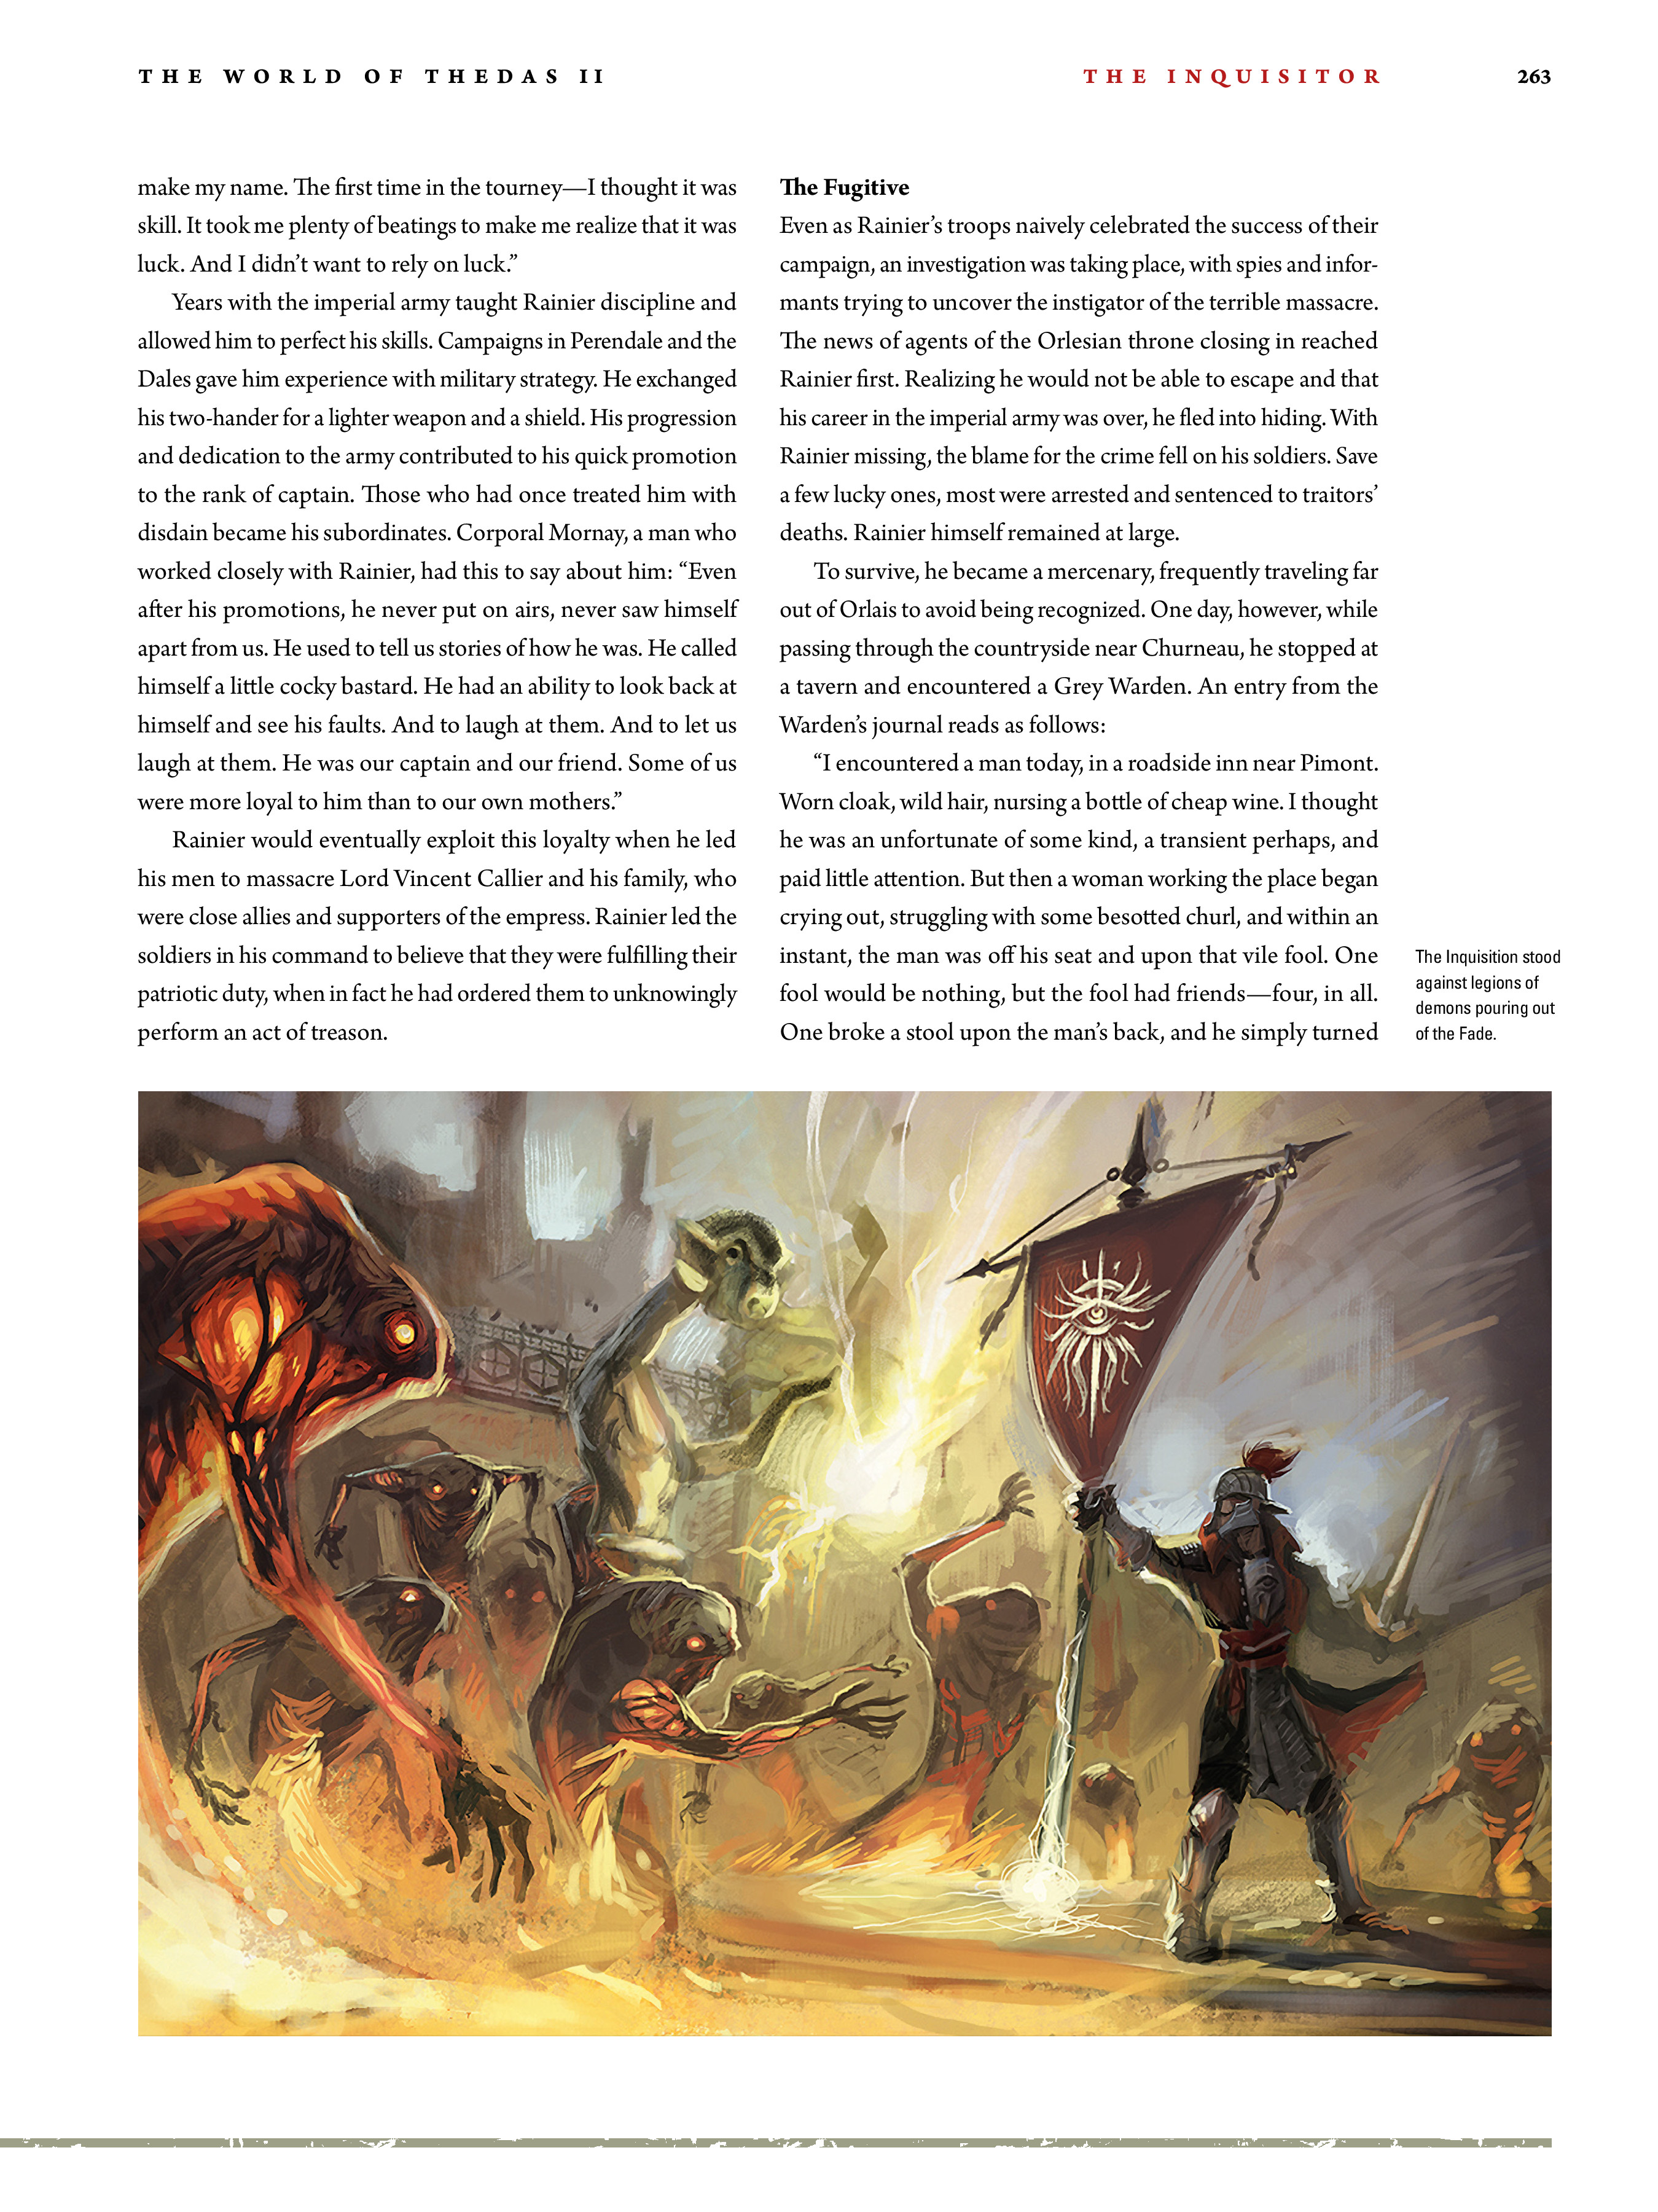 Read online Dragon Age: The World of Thedas comic -  Issue # TPB 2 - 256